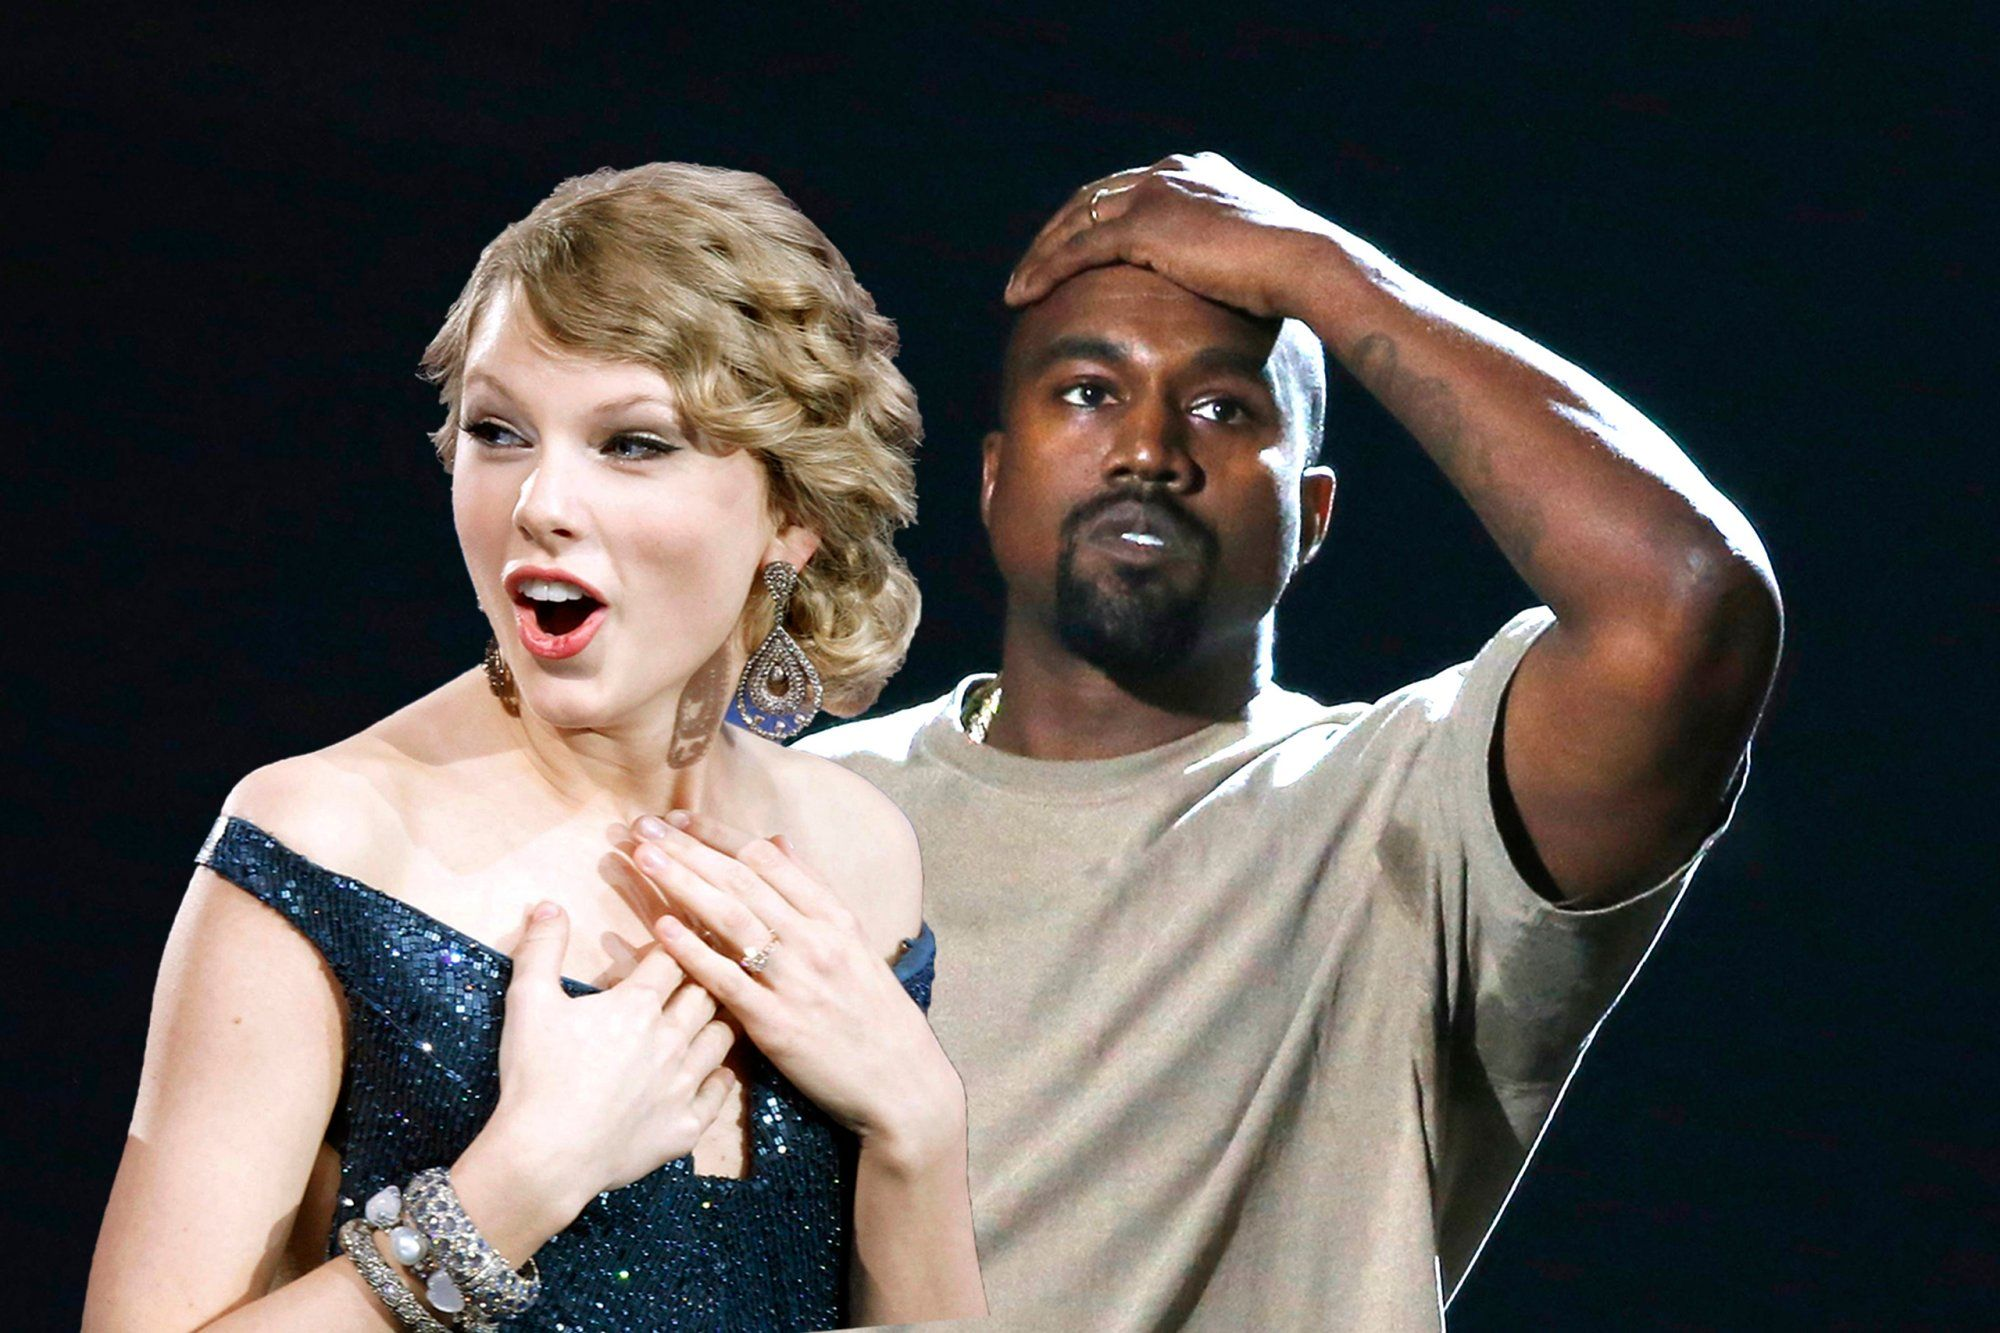 Kanye West Vs Taylor Swift The Misogynistic Feud That Will Never End Kanye West Songs Taylor Swift Kanye West Kanye West